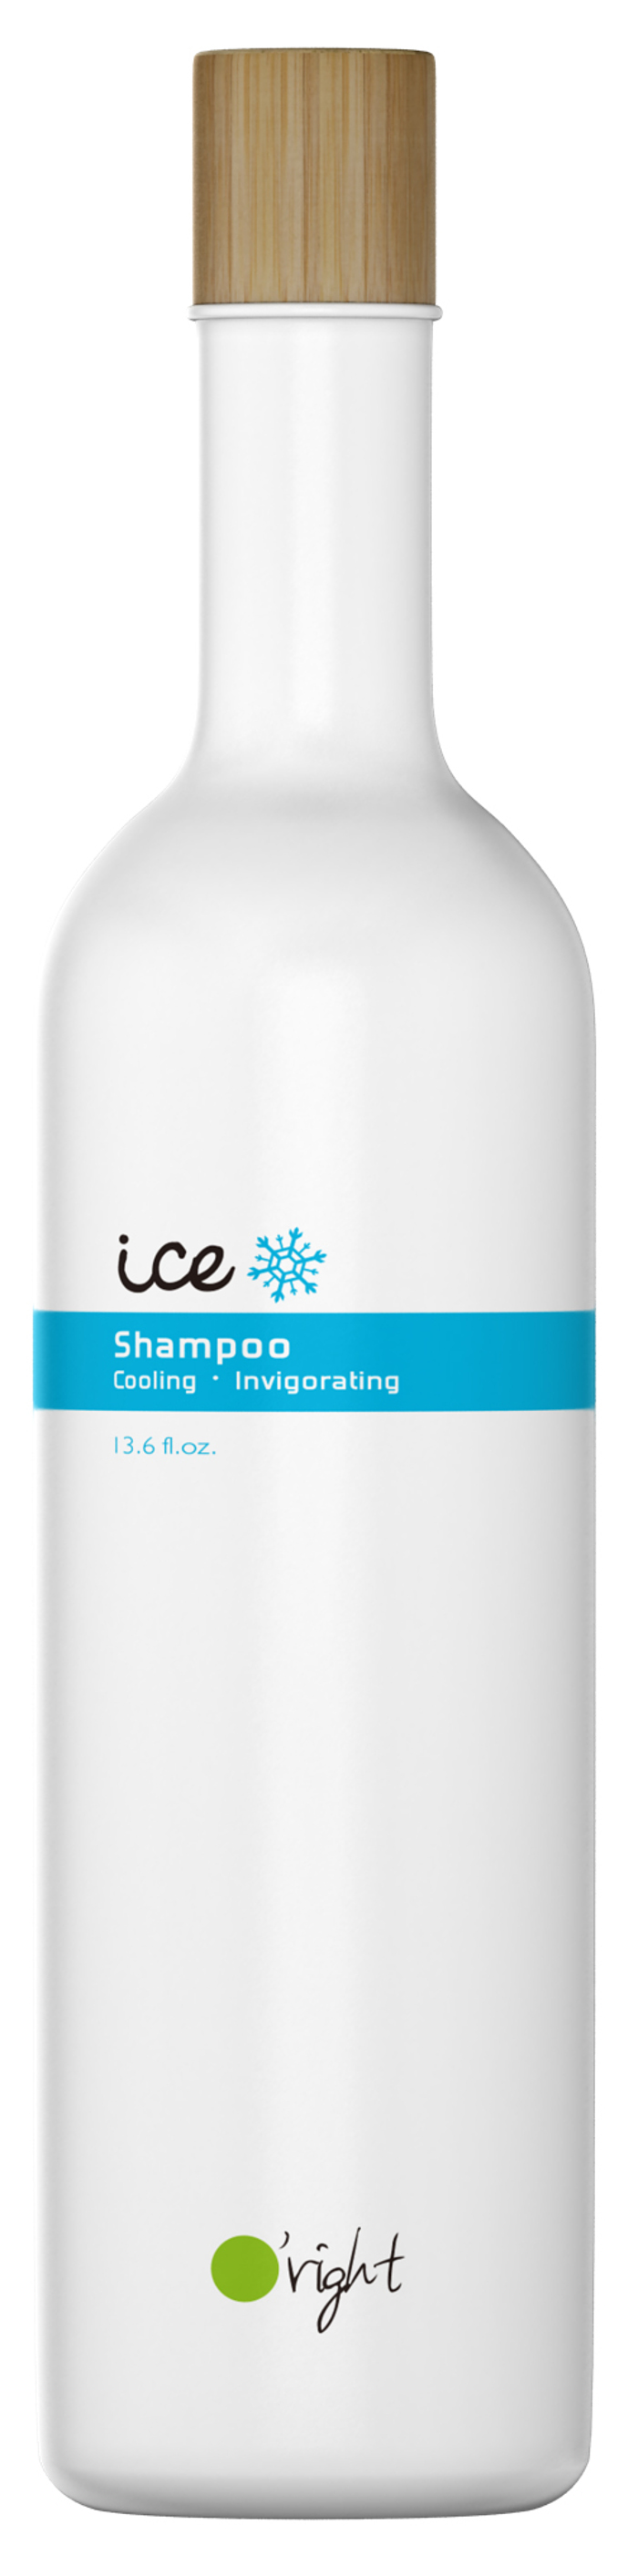 Ice Shampoo 400ml 2